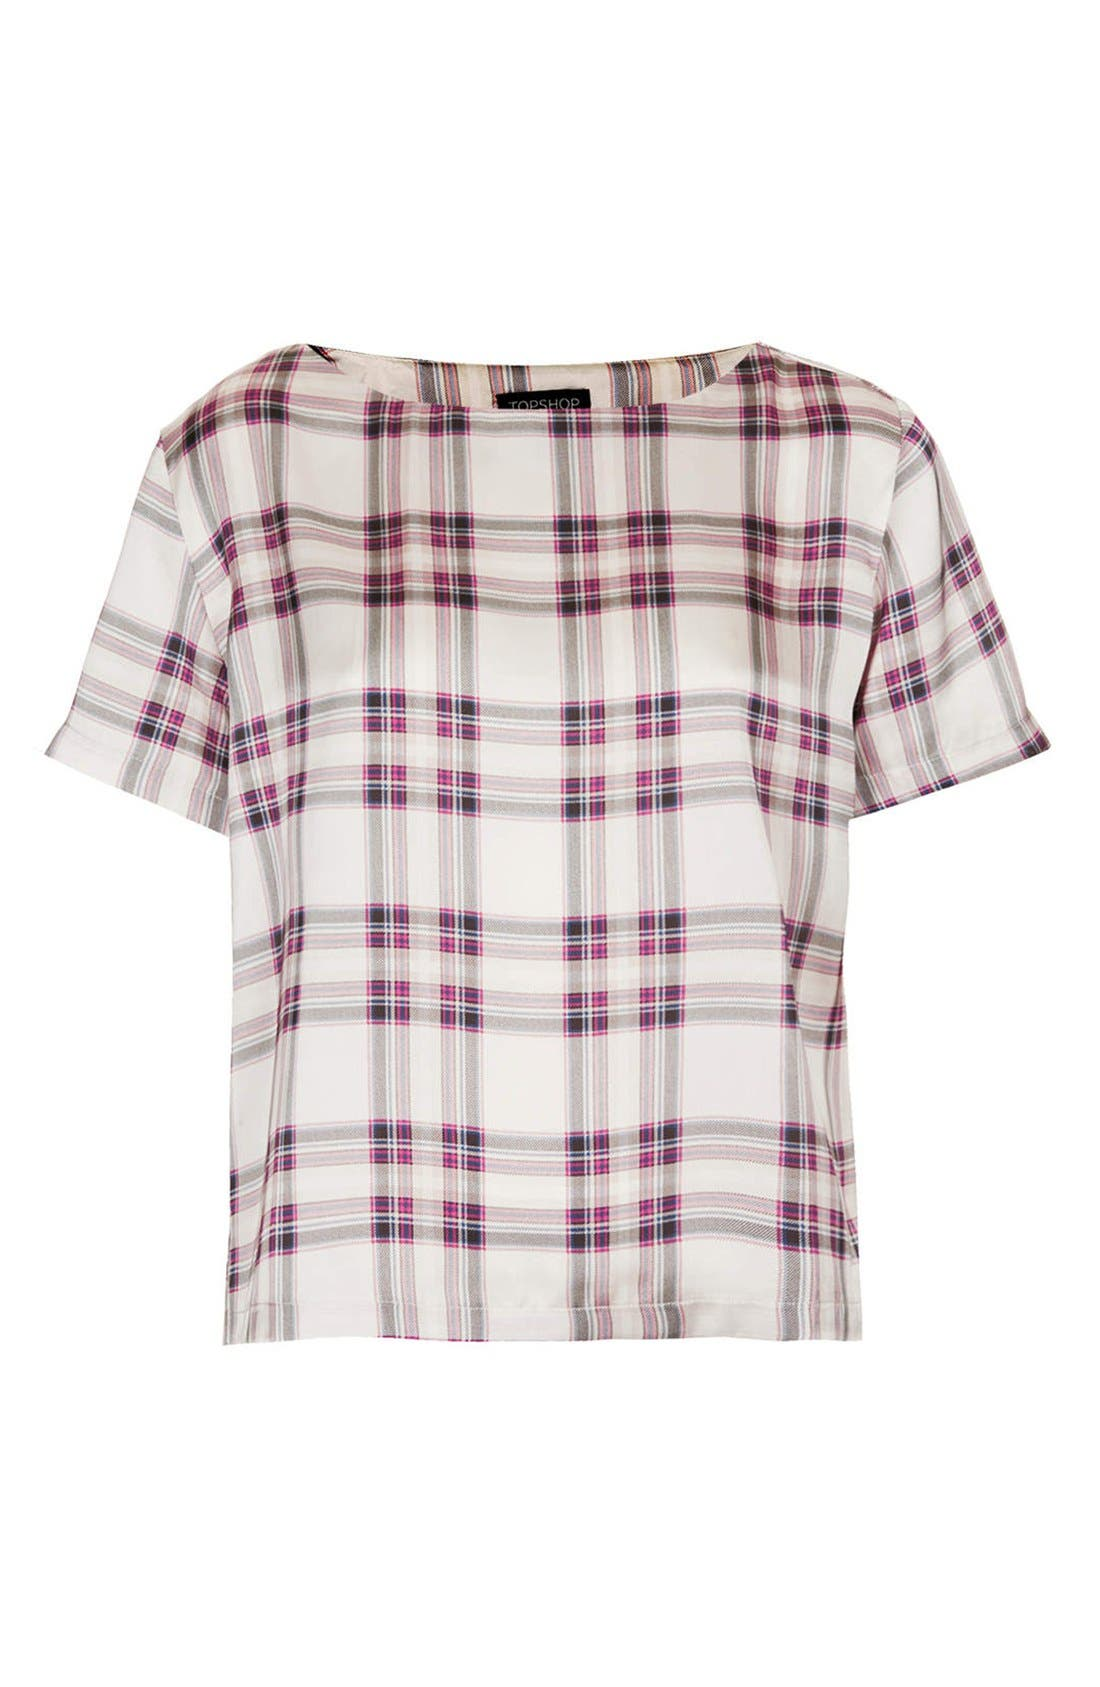 Alternate Image 3  - Topshop 'Summer Check' Print Tee